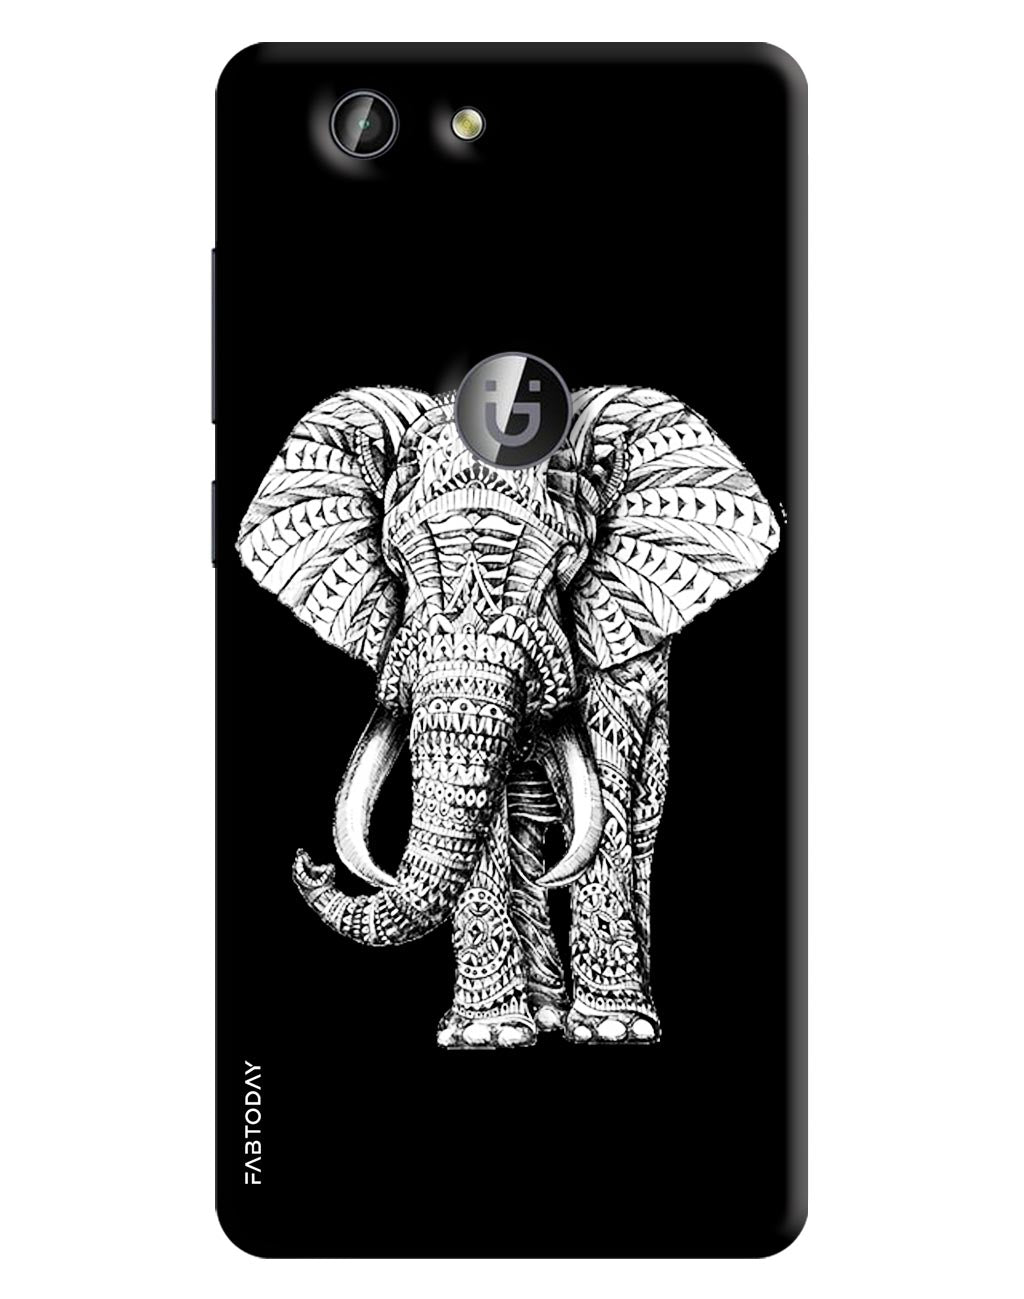 Elephant Back Cover for Gionee F103 Pro